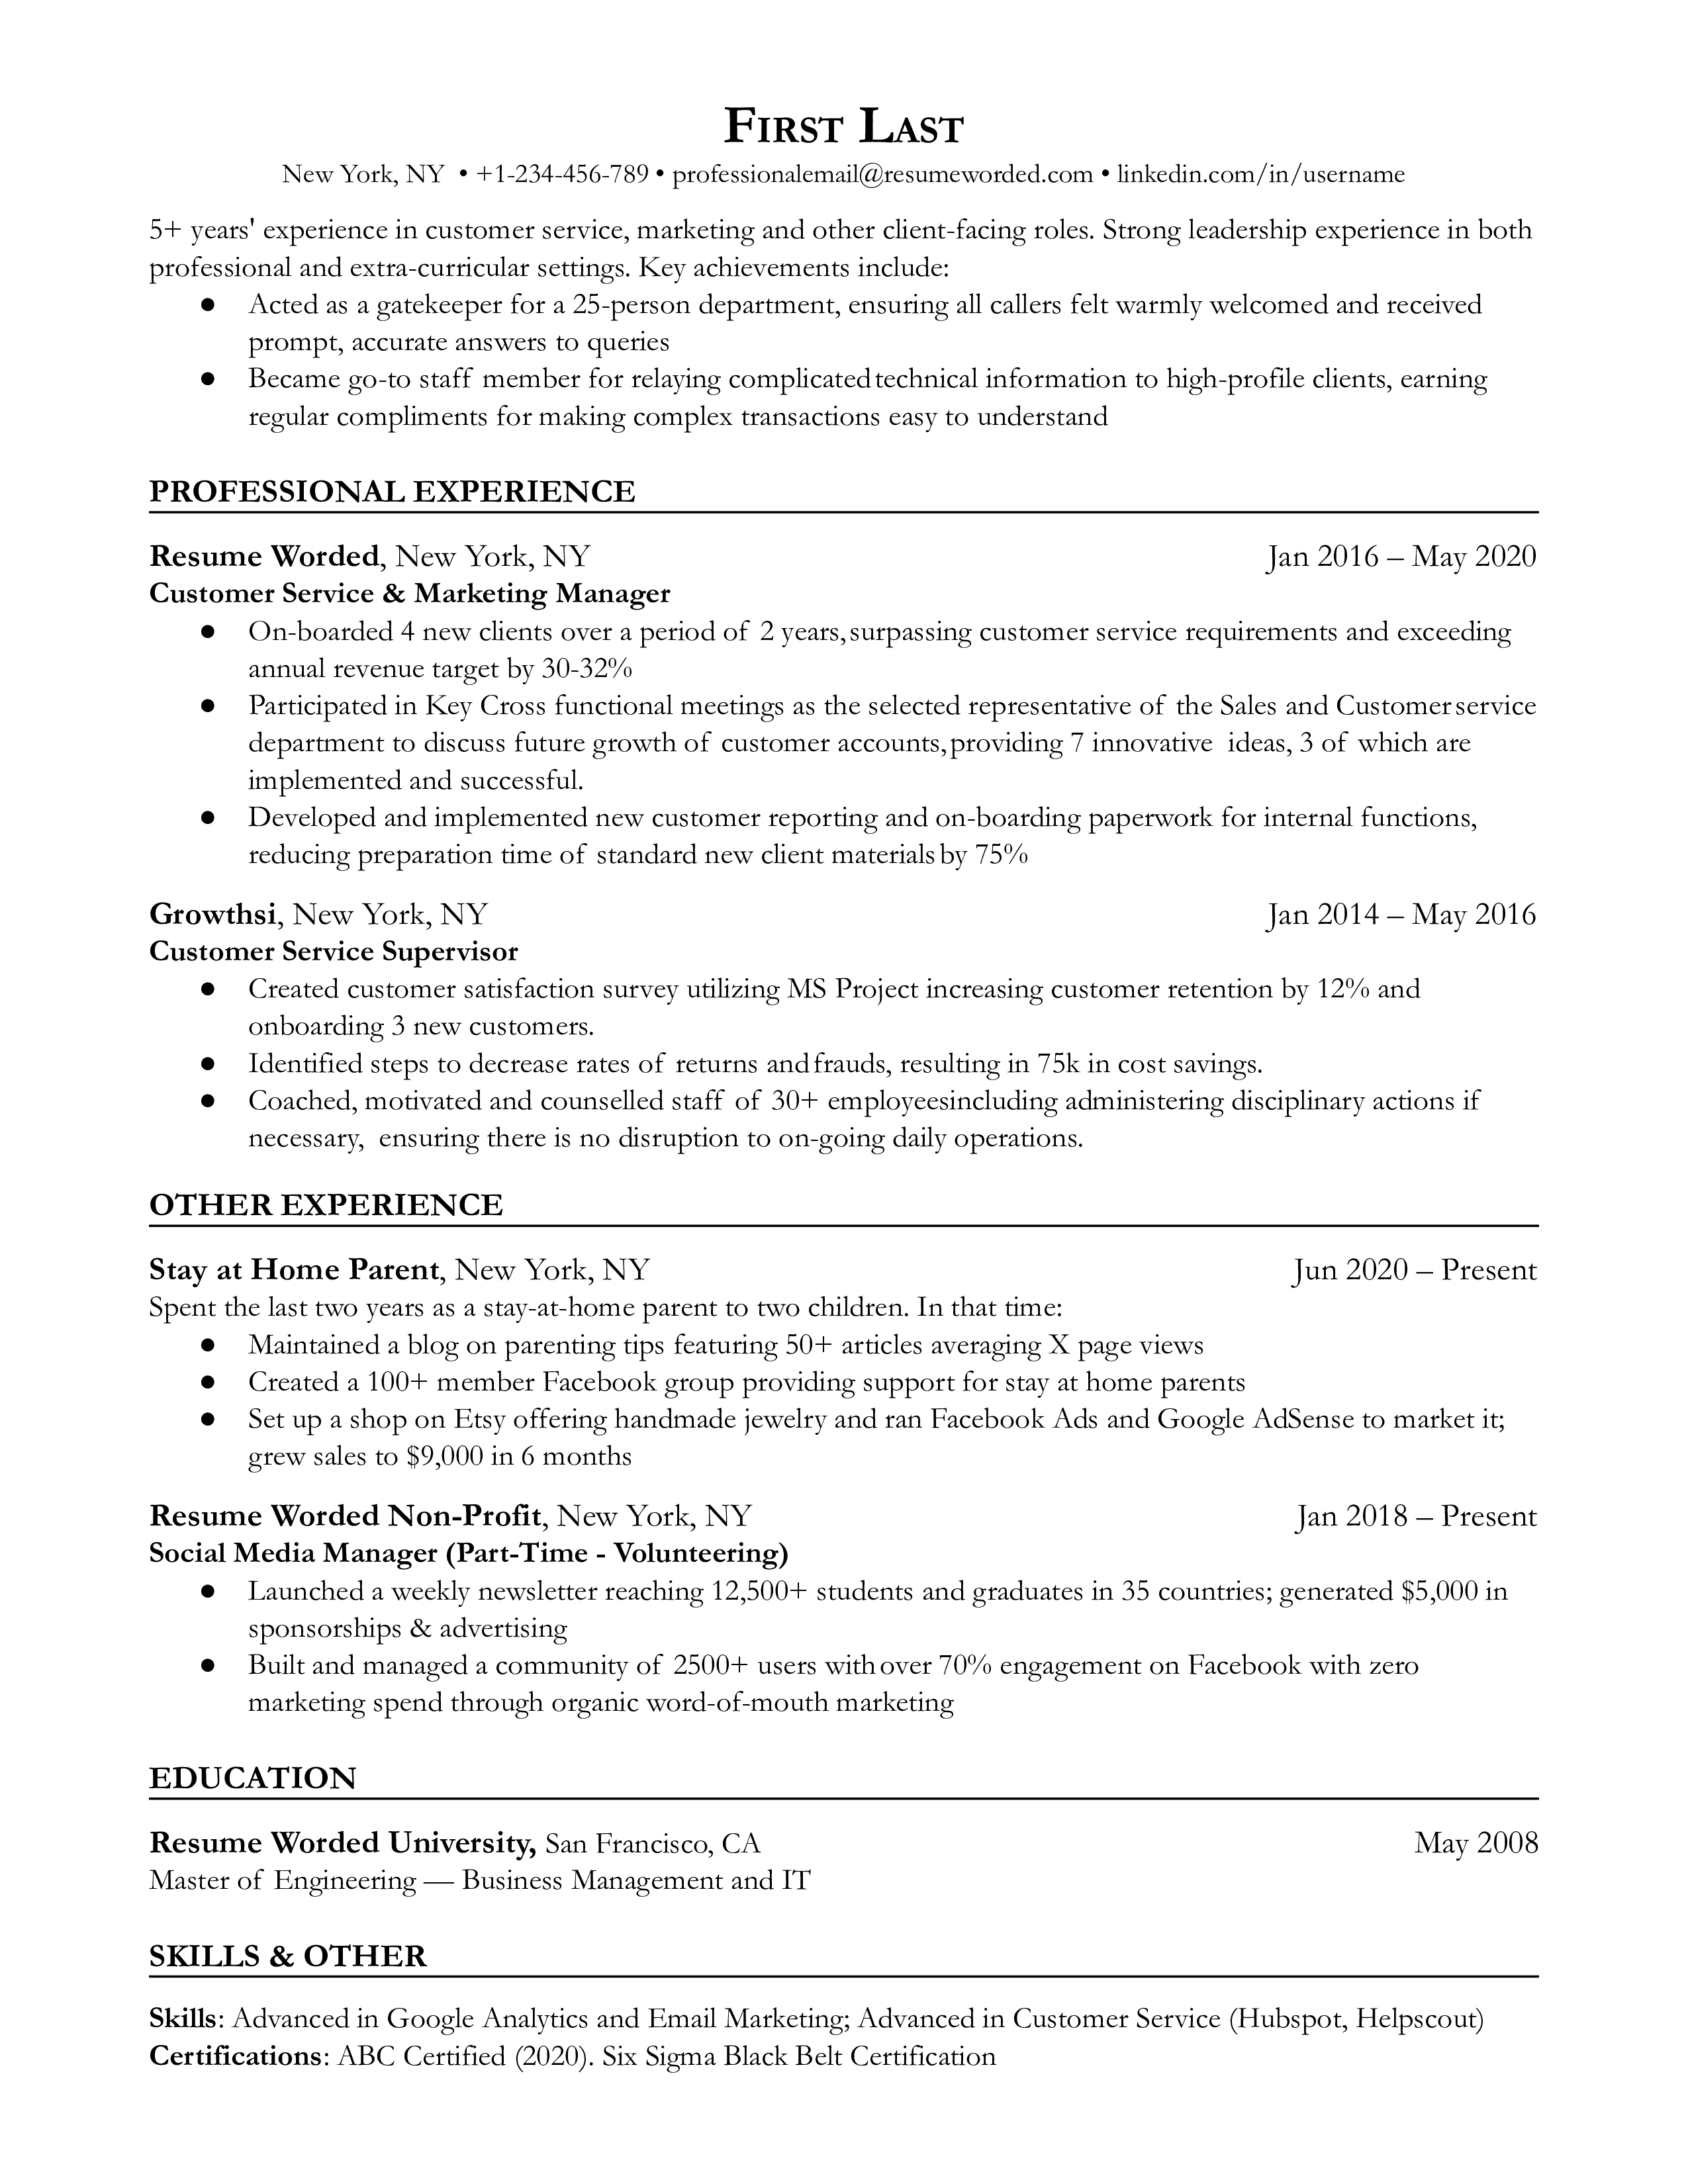 A sample resume template and sample for stay at home moms returning to the workforce in Google Docs, Word or PDF format